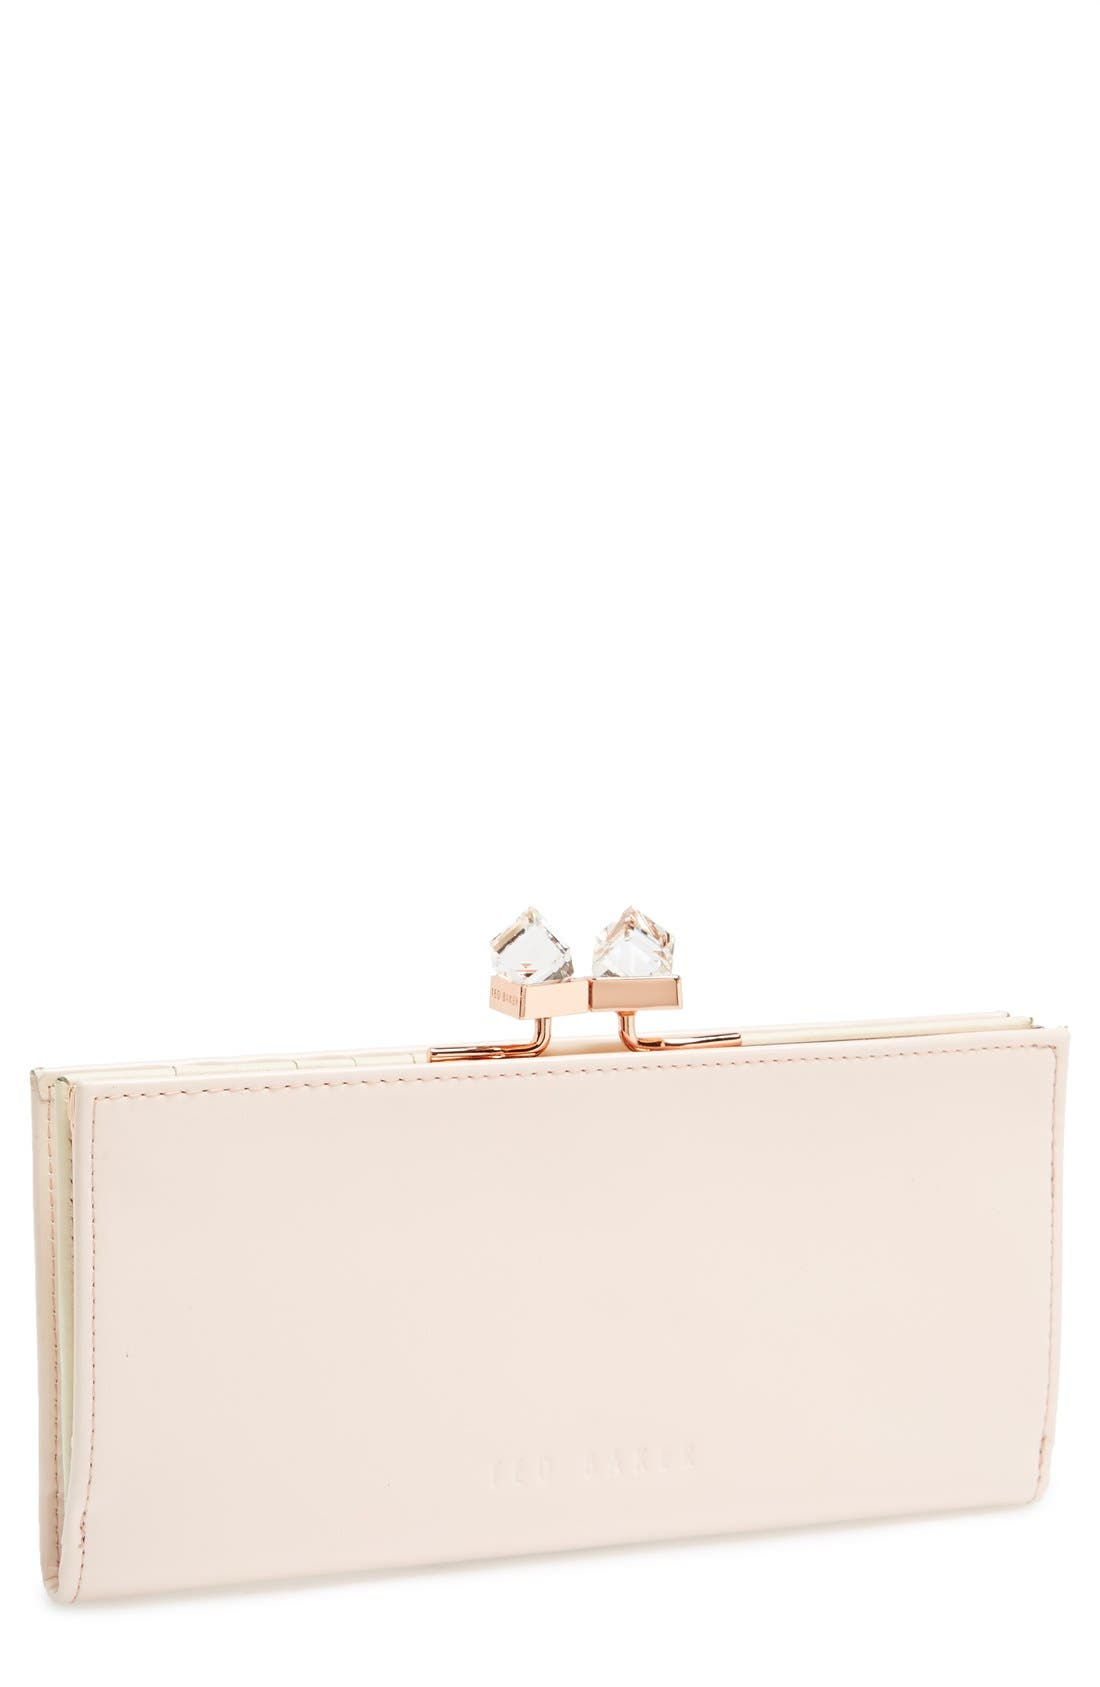 Main Image - Ted Baker London 'Crystal Popper' Patent Leather Matinee Wallet